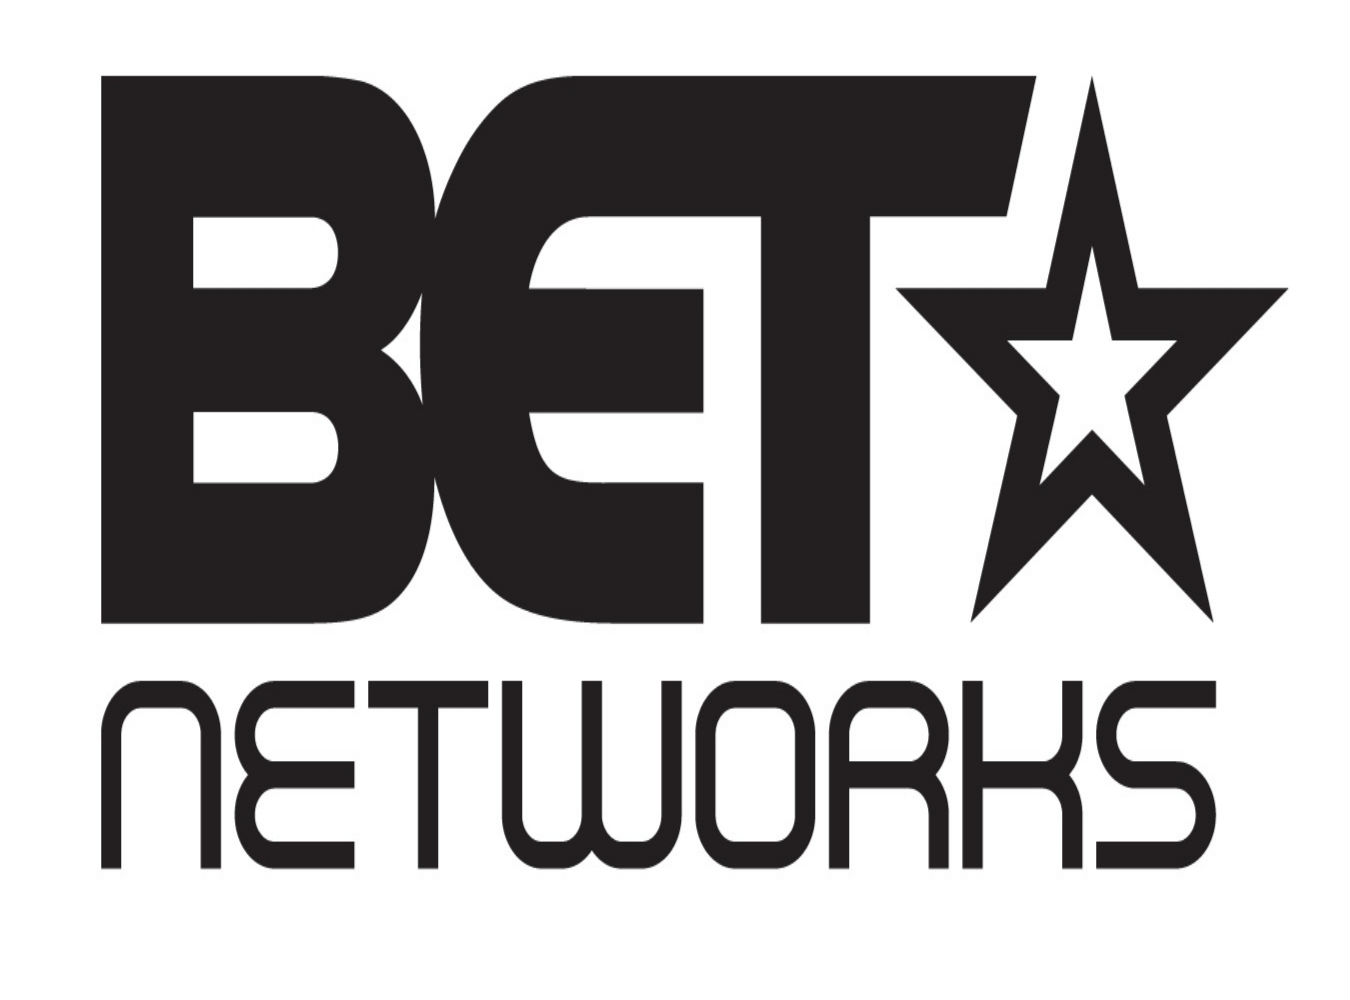 bet centric unveils upcoming programming slate new drama series original movies more indiewire. Black Bedroom Furniture Sets. Home Design Ideas